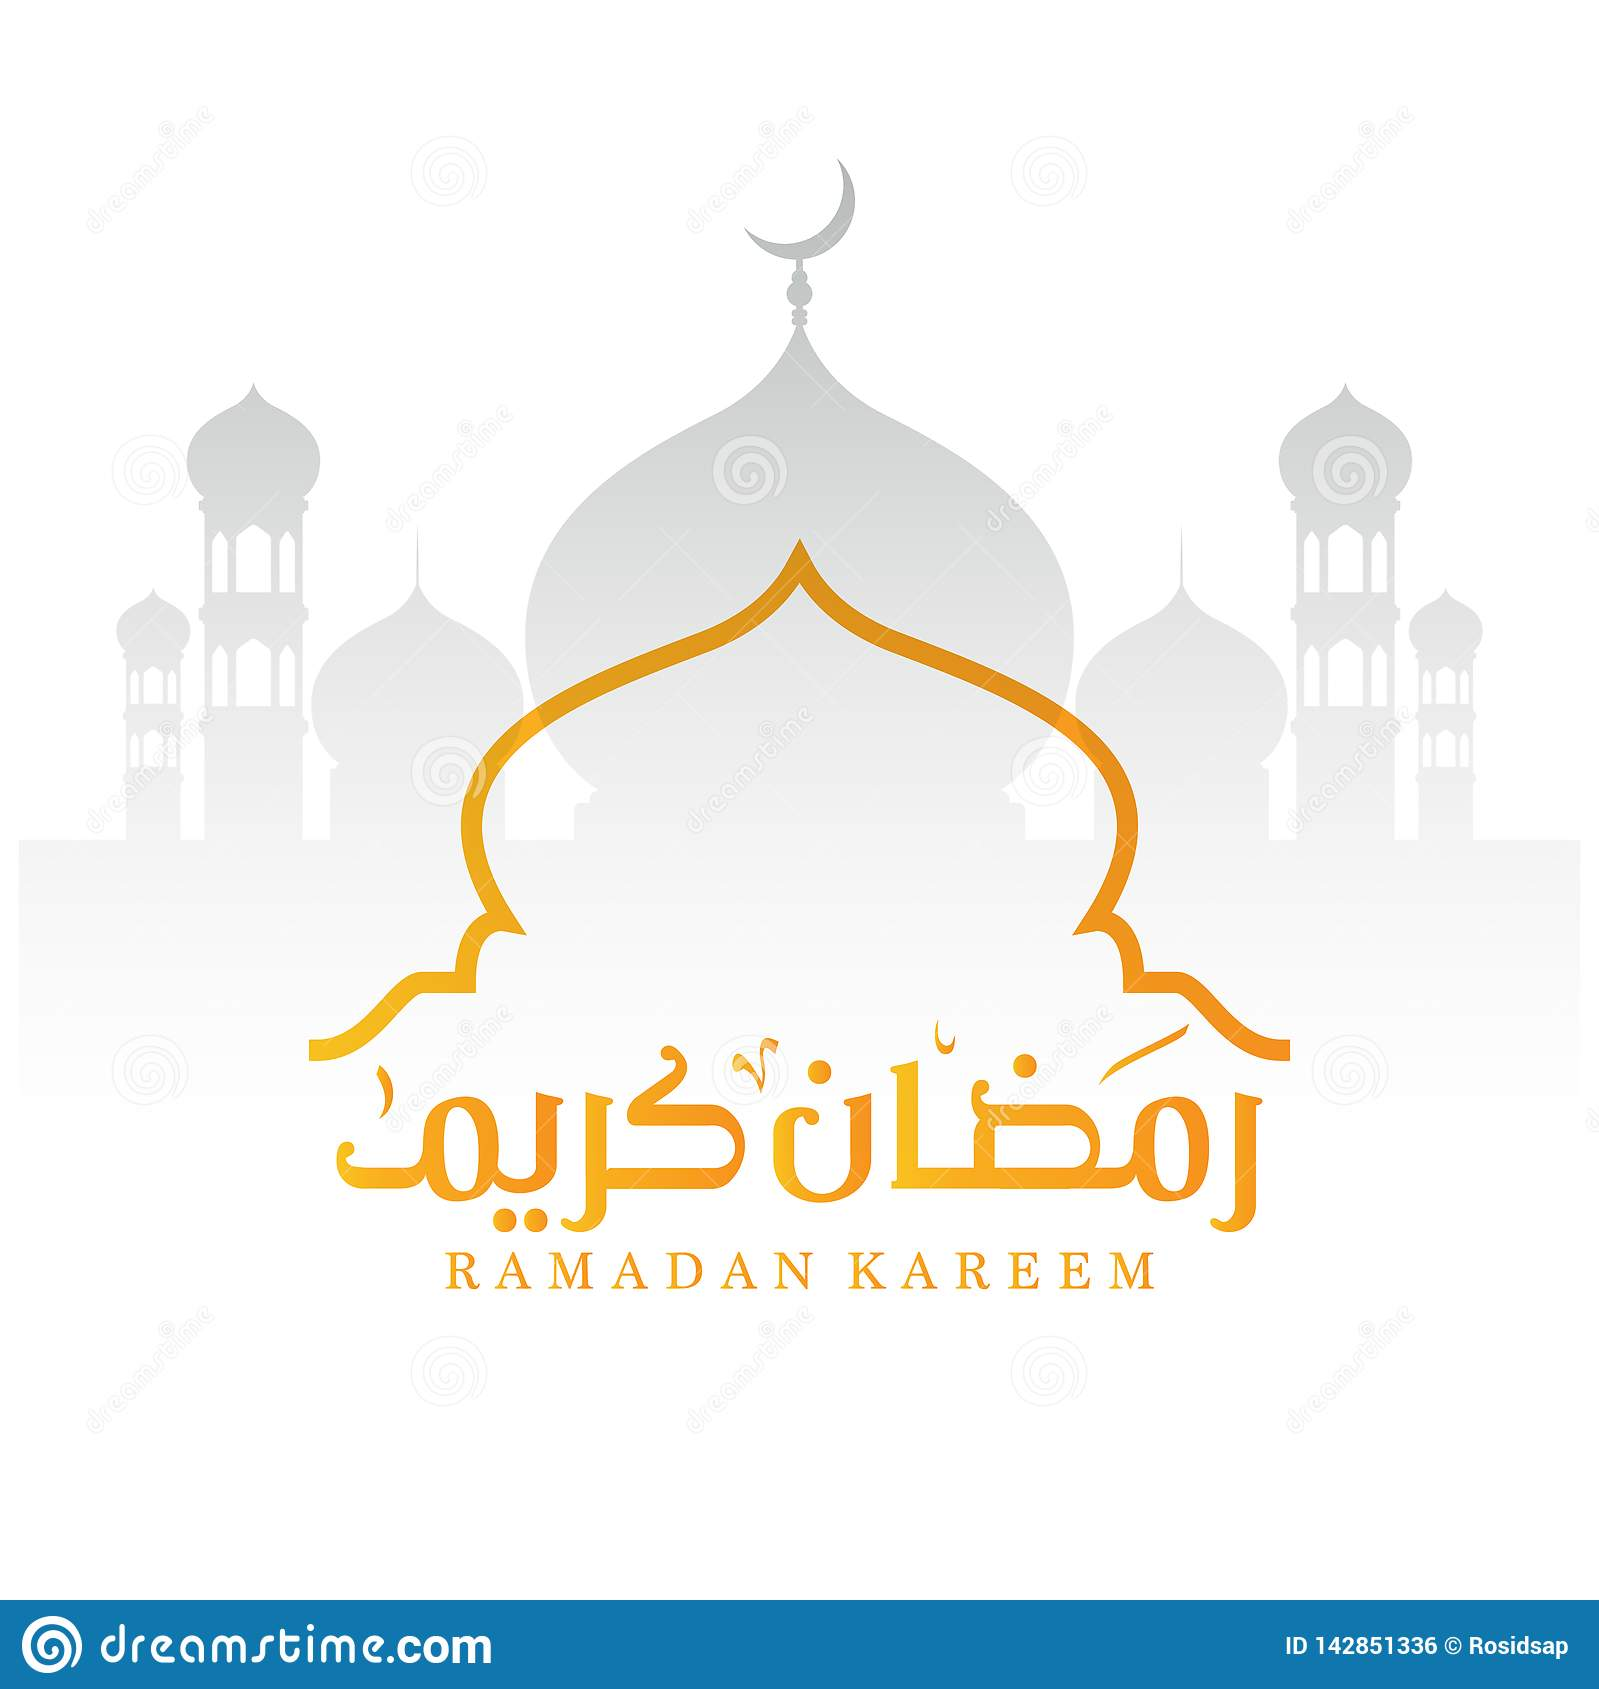 Ramadan Kareem design of the crescent and dome of the Islamic mosque silhouette with Arabic and golden calligraphy luxury - Vector